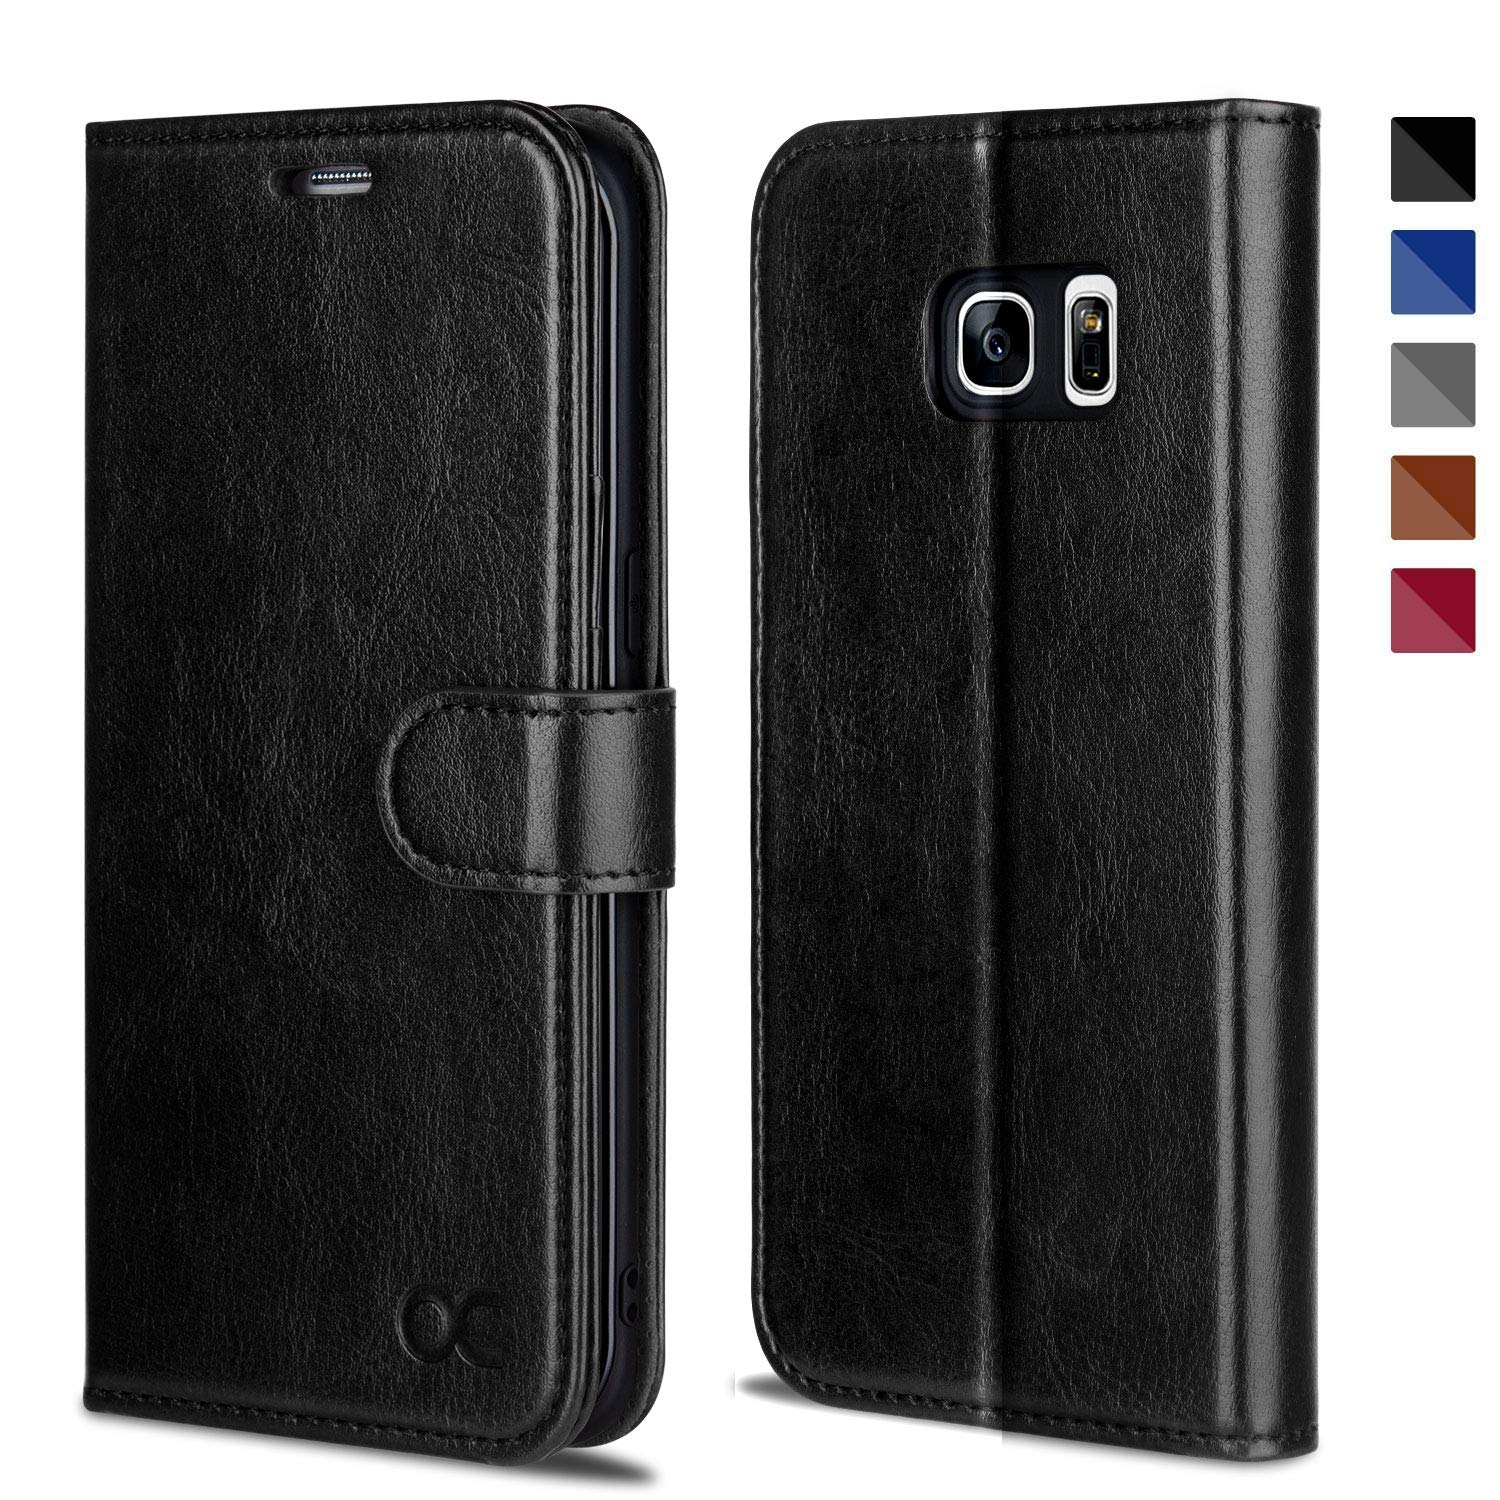 size 40 85ecd 821fe OCASE Galaxy S7 Edge Case [TPU Shockproof Interior Protective Case] [Card  Slot] [Kickstand] Leather Wallet Flip Case Samsung Galaxy S7 Edge (Black)